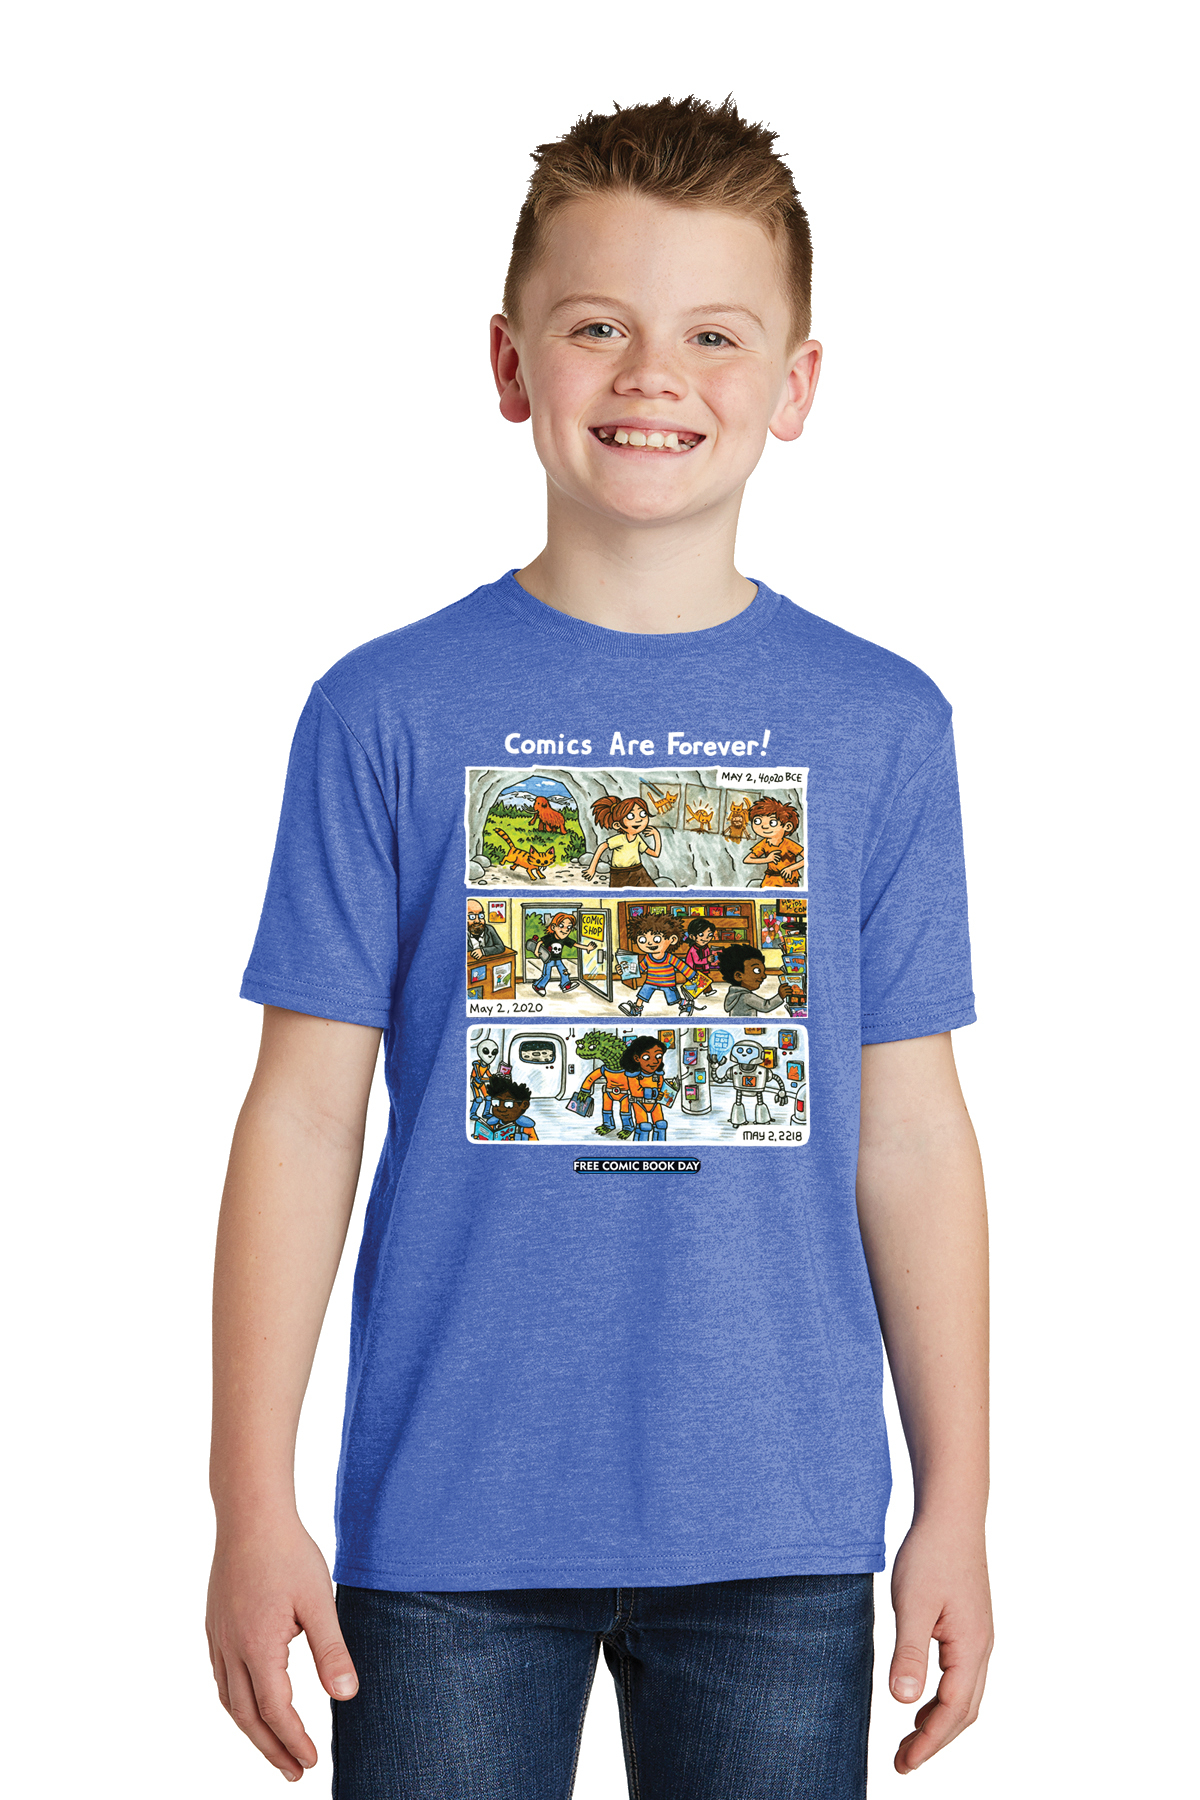 FCBD 2020 COMM ARTIST BROWN BLUE YOUTH T/S LG